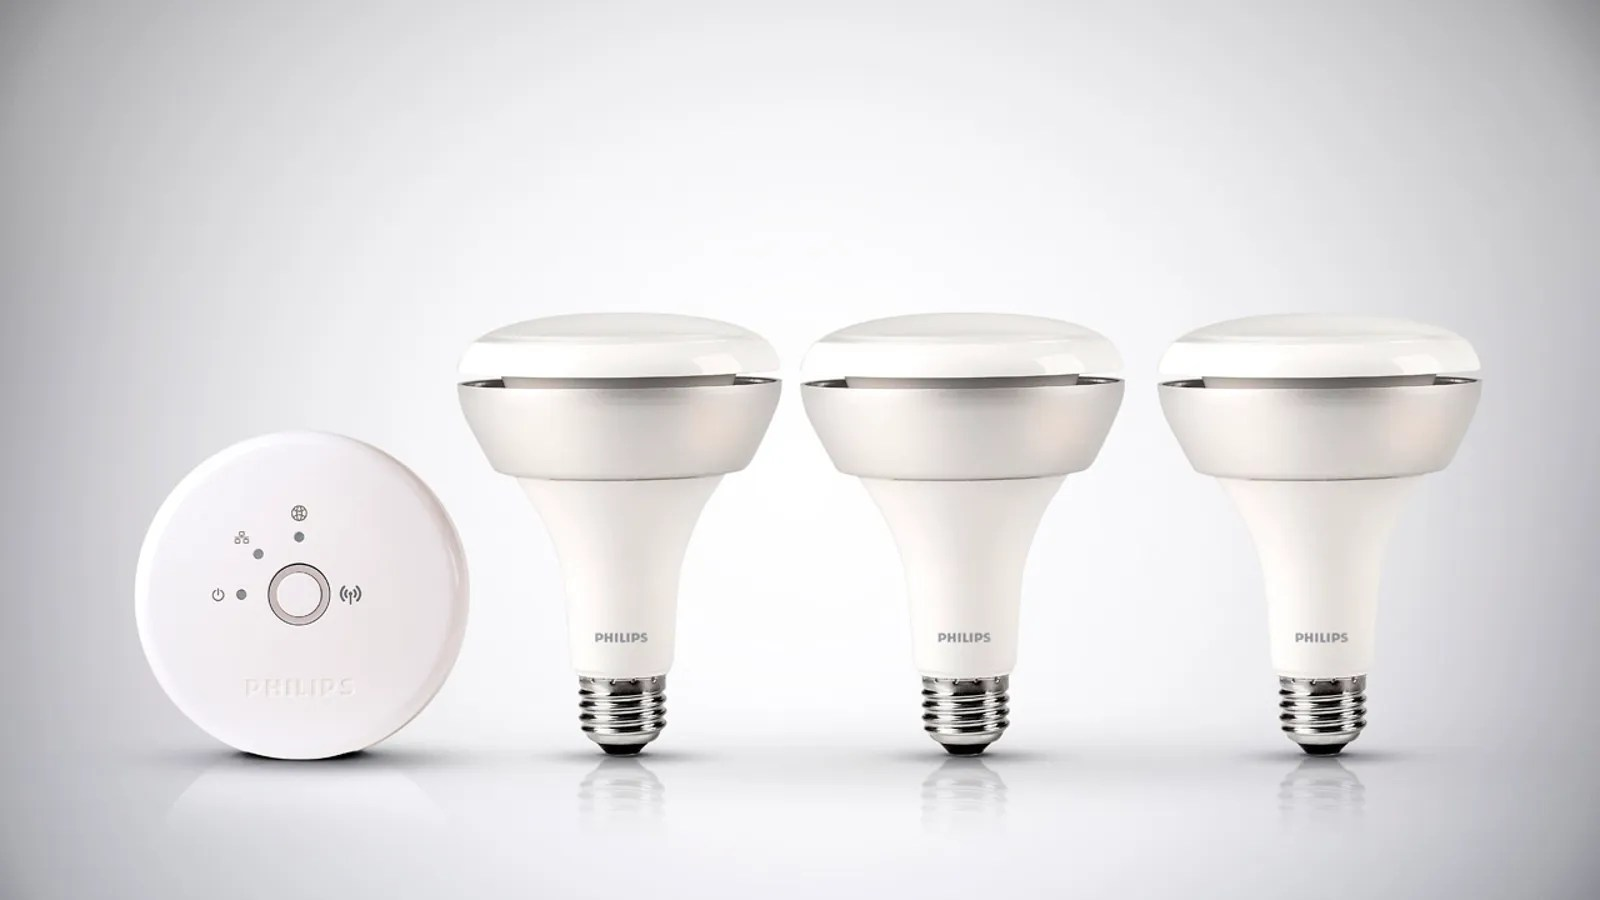 Philips Hue Br30 Philips Adds A New Bulb To The Hue Lineup